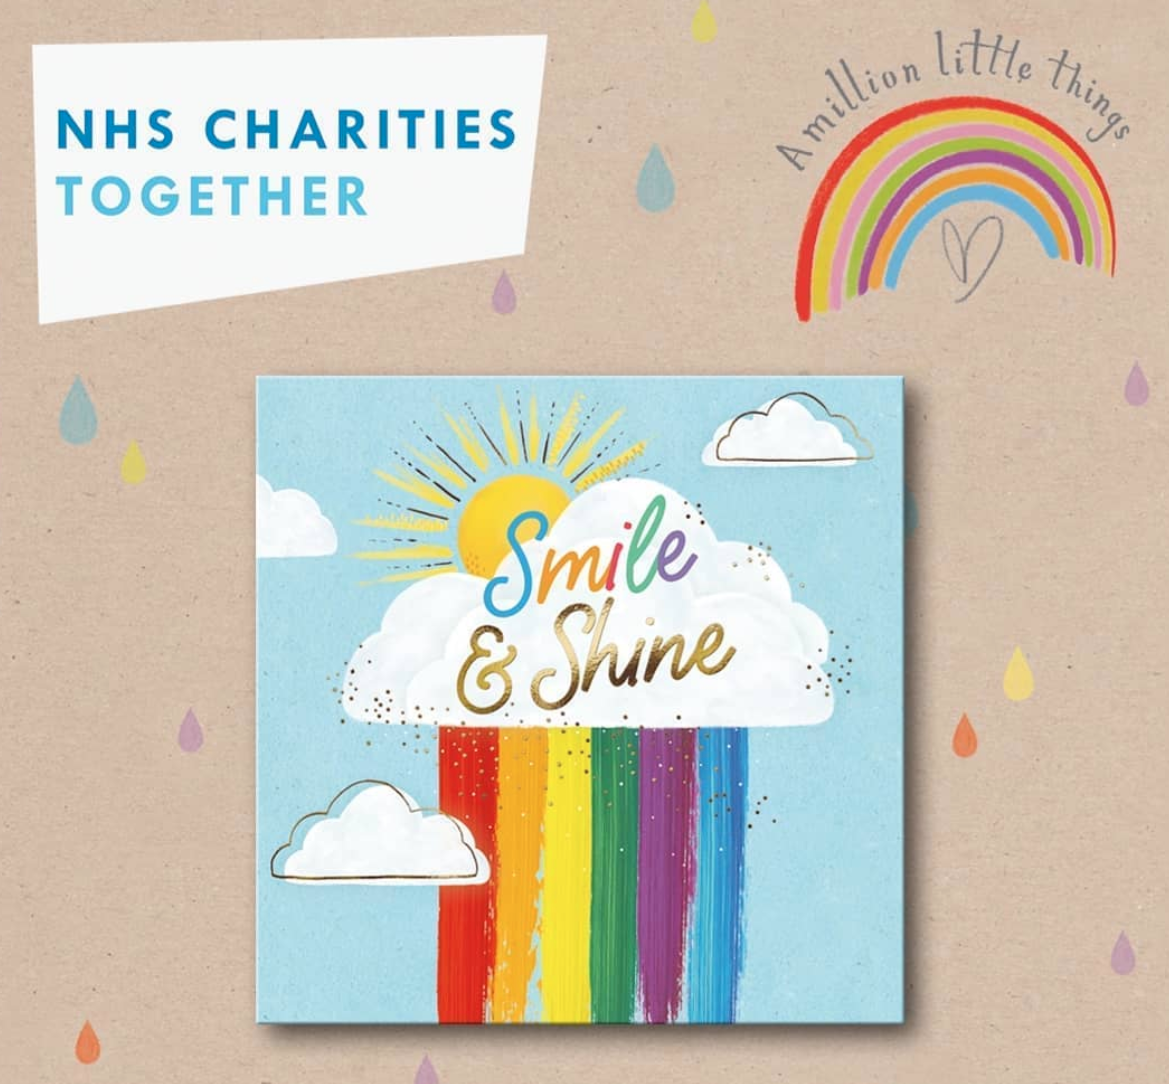 Above: Among the latest launches is the Million Little Things range from GBCC which is raising money for NHS Charities Together.